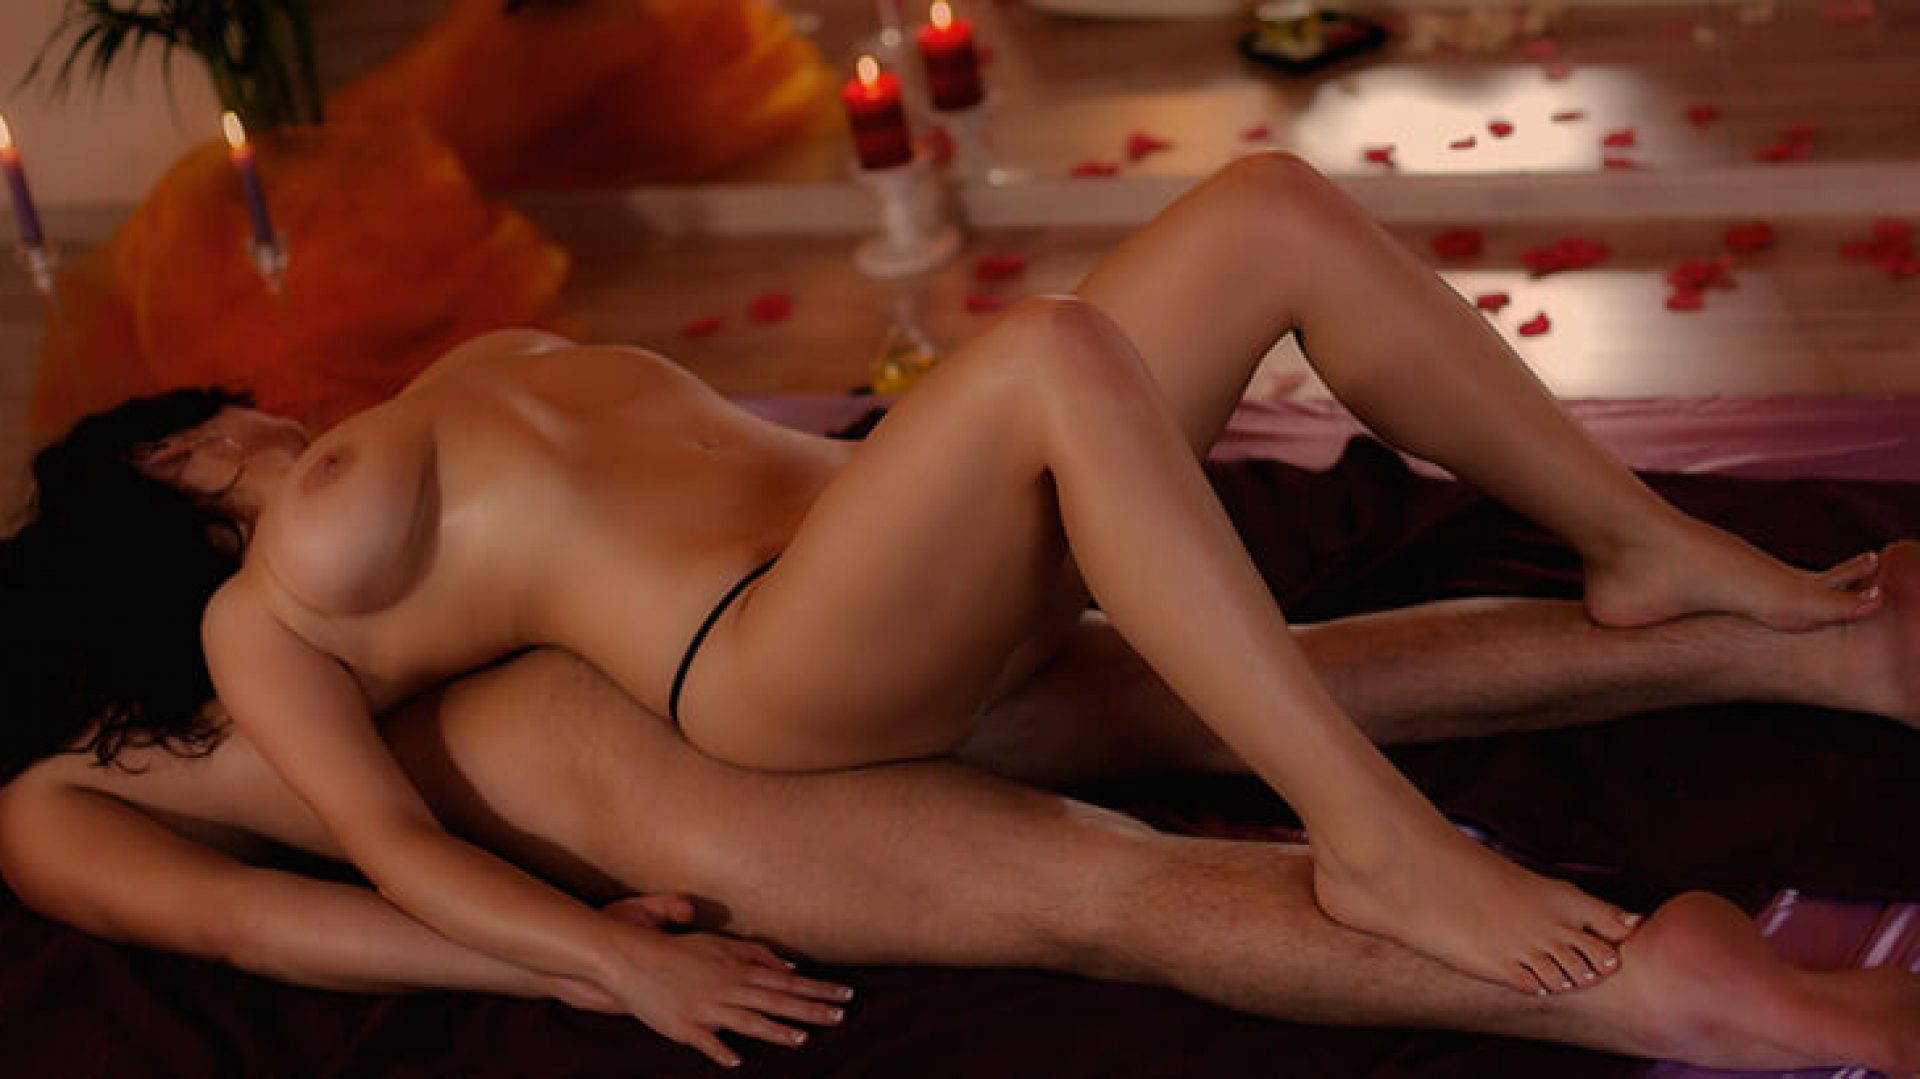 Nude massage and their benefits